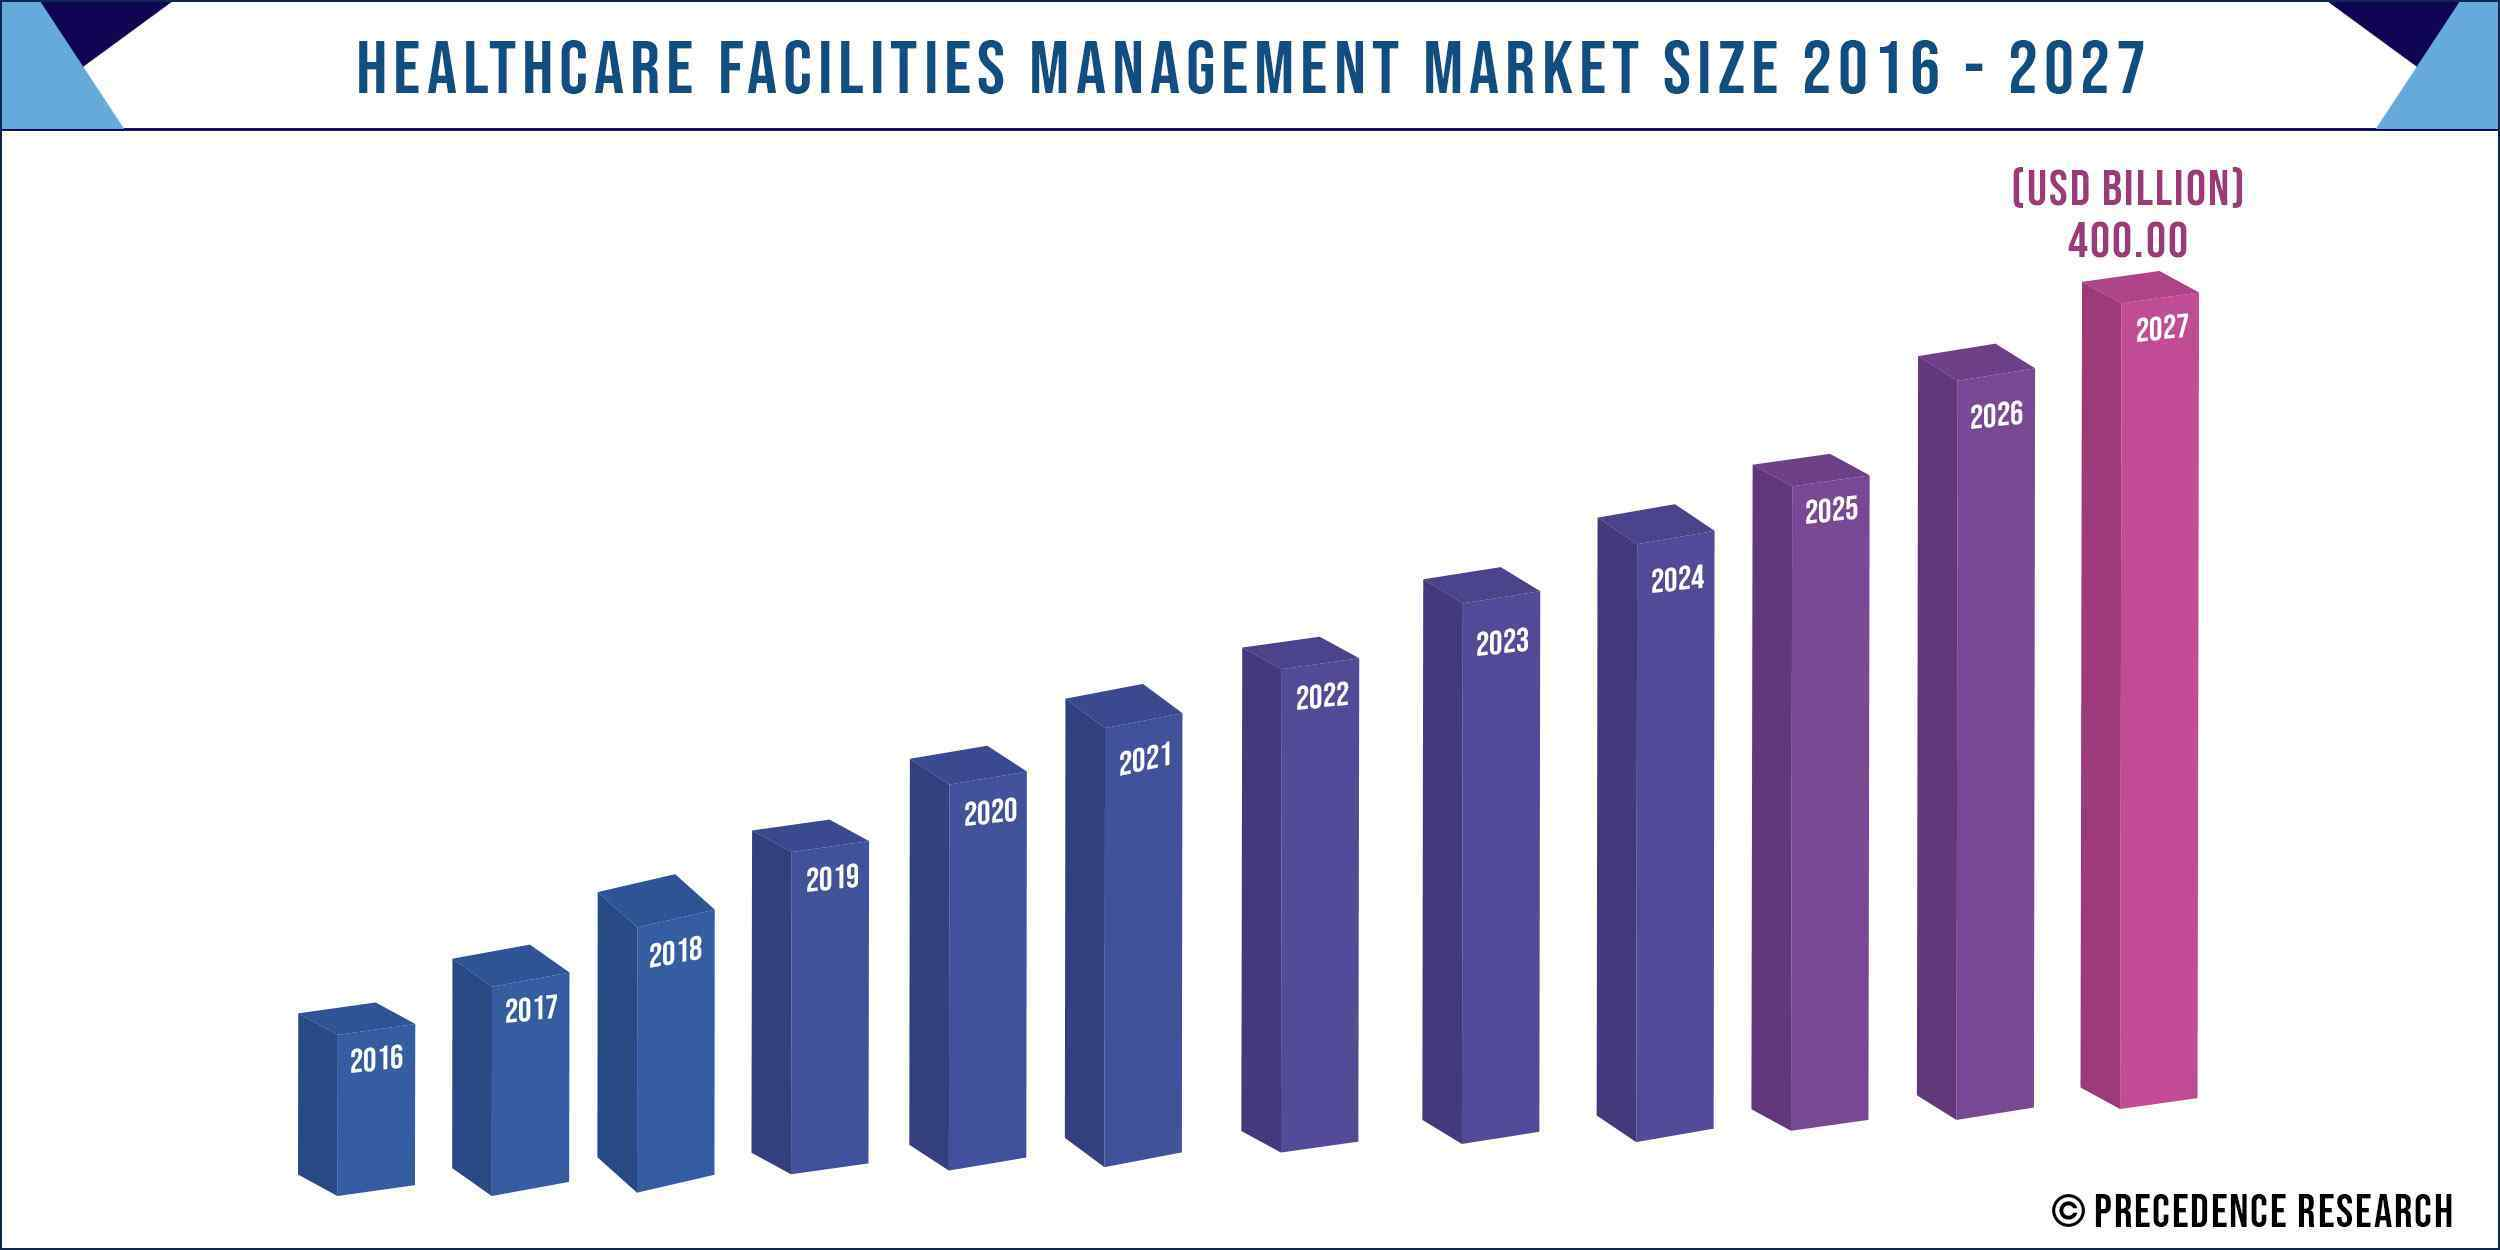 Healthcare Facilities Management Market Size 2016 to 2027